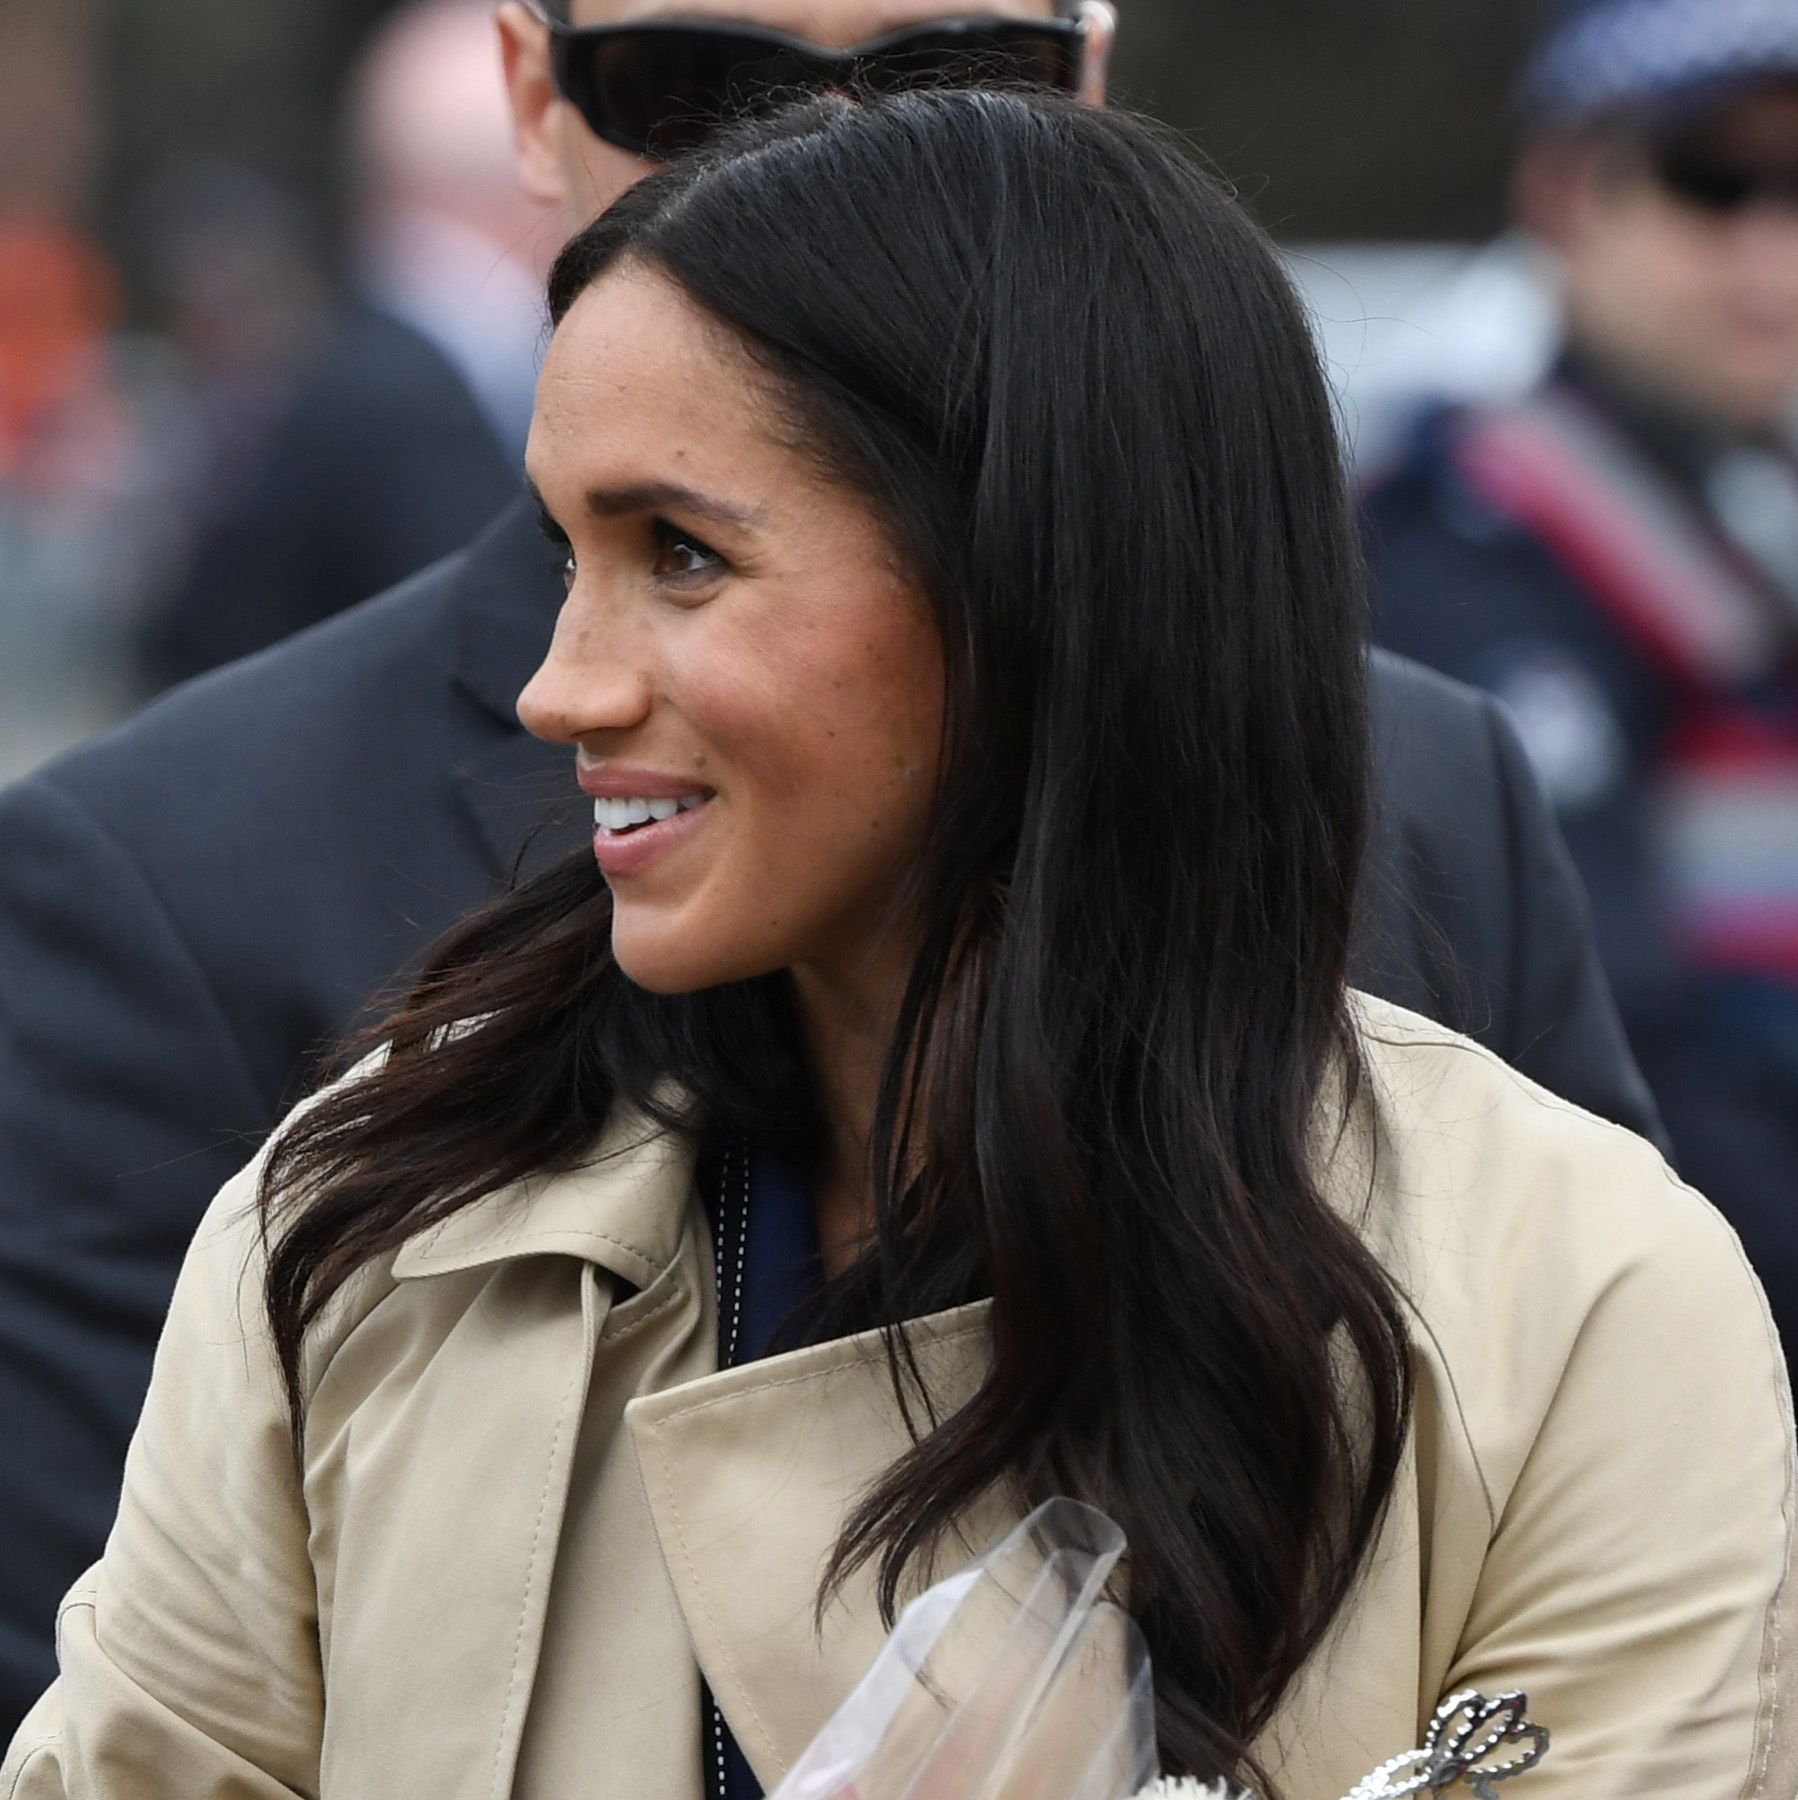 The Internet Thinks Meghan Markle Was Spotted Incognito in New York City Based on Her Coat